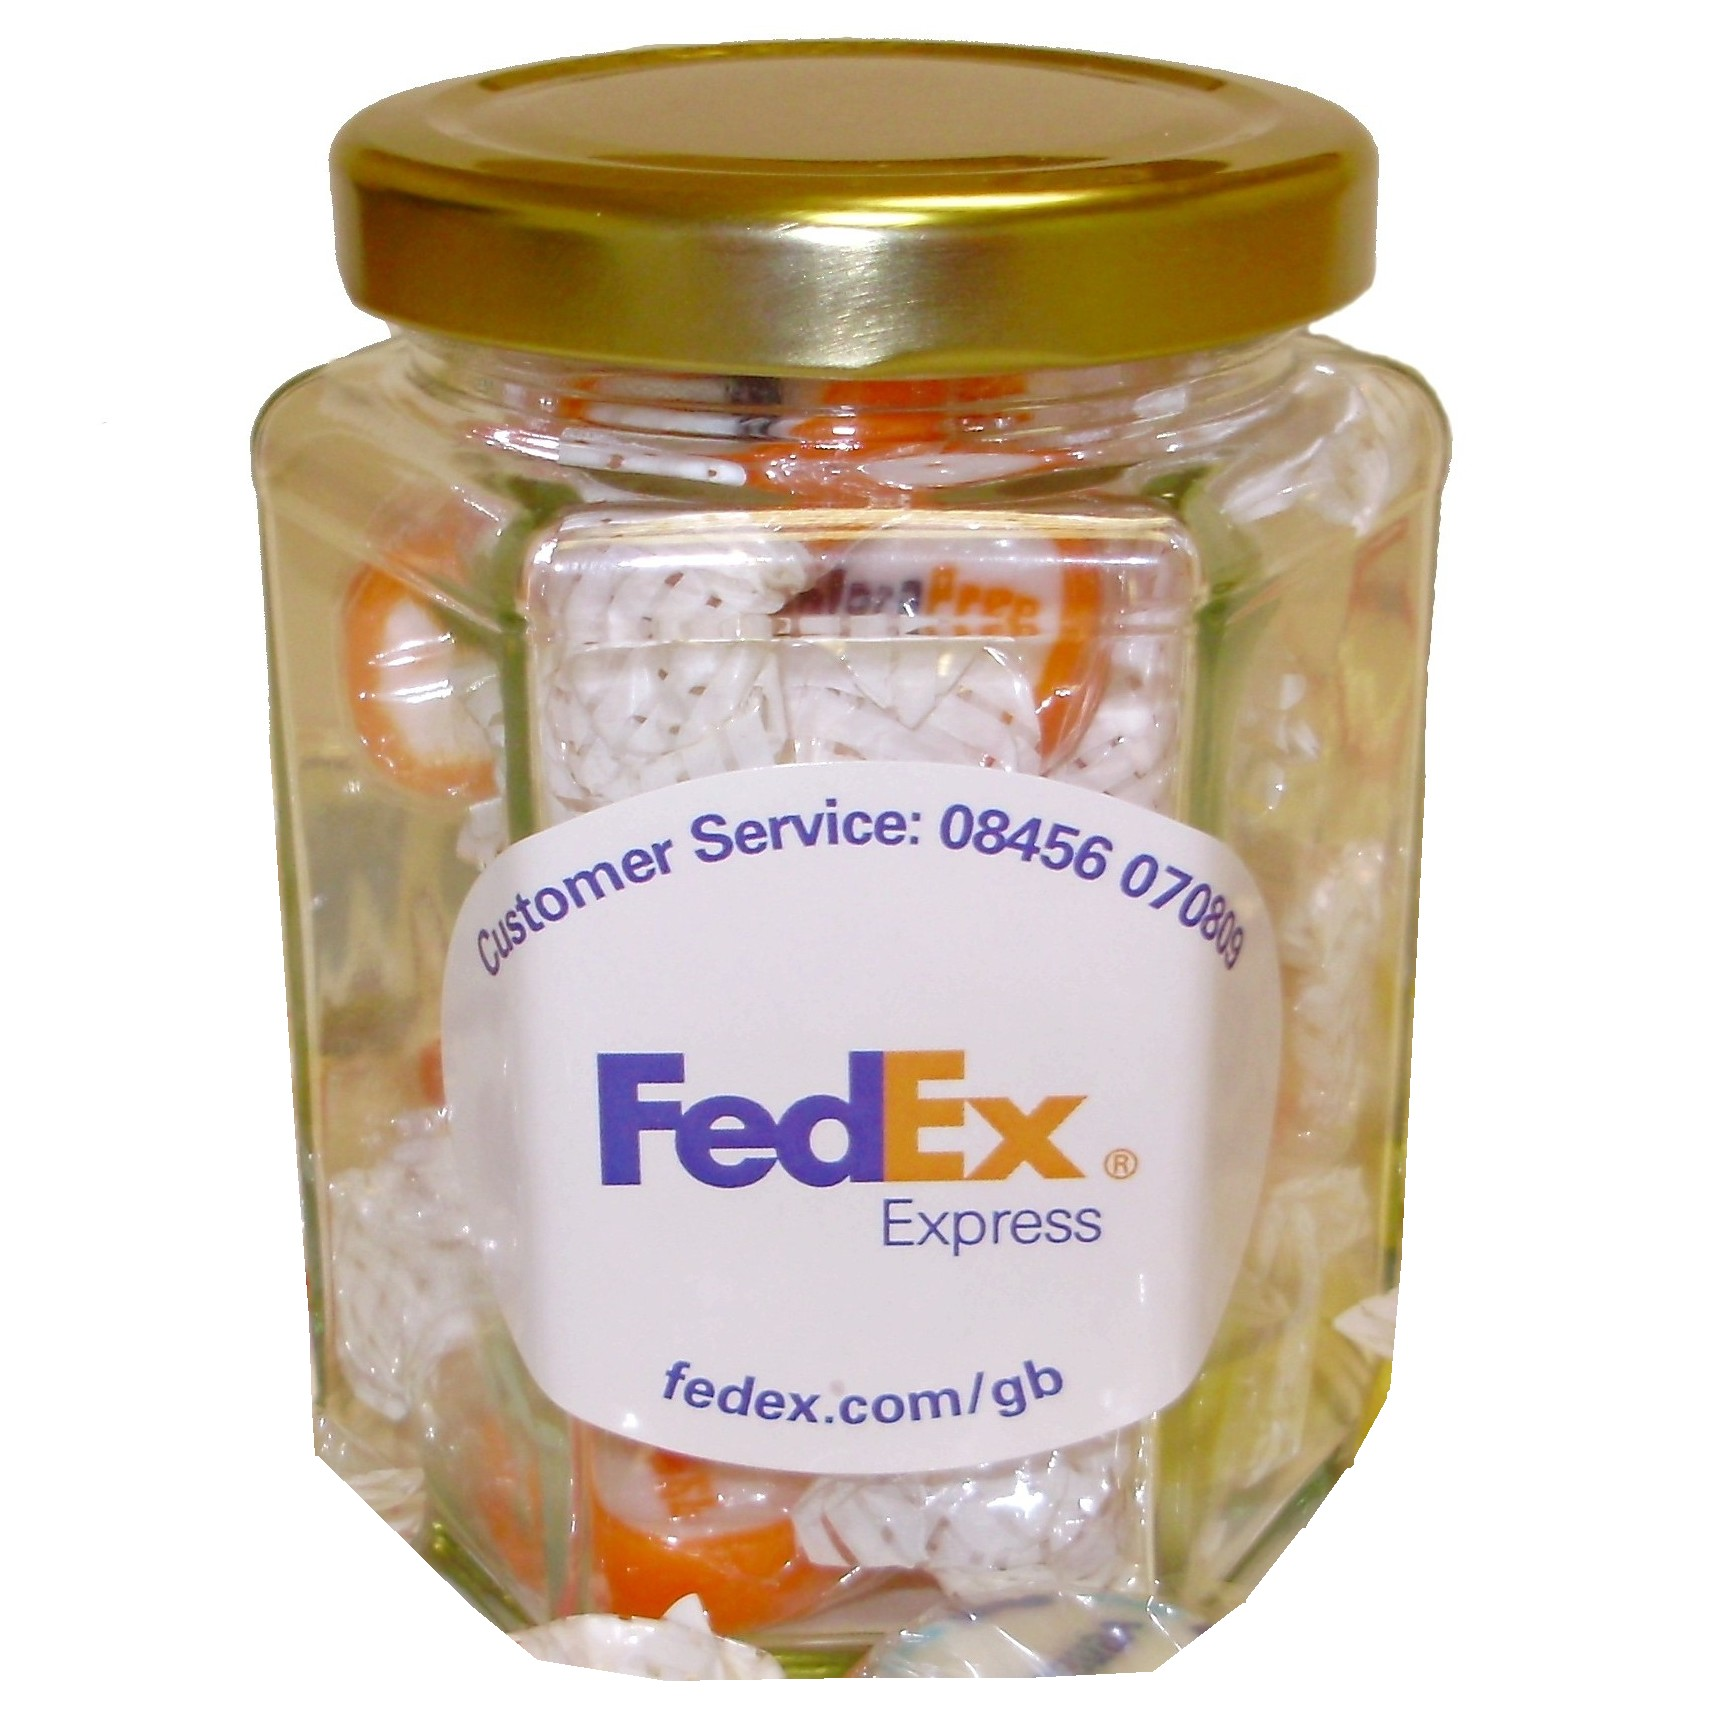 branded jars of sweets